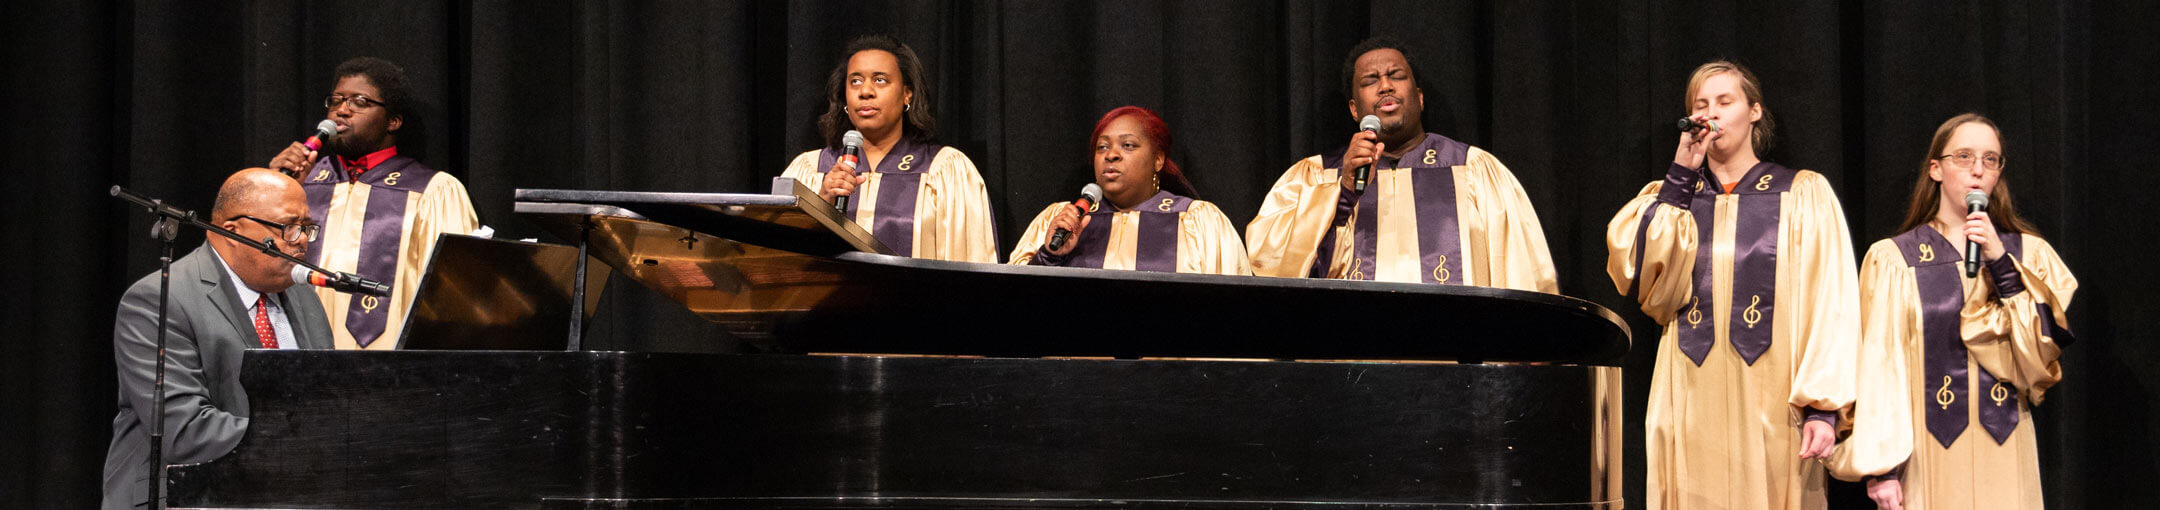 RIT's Gospel ensemble, performing on stage with Wardell Lewis playing the piano.